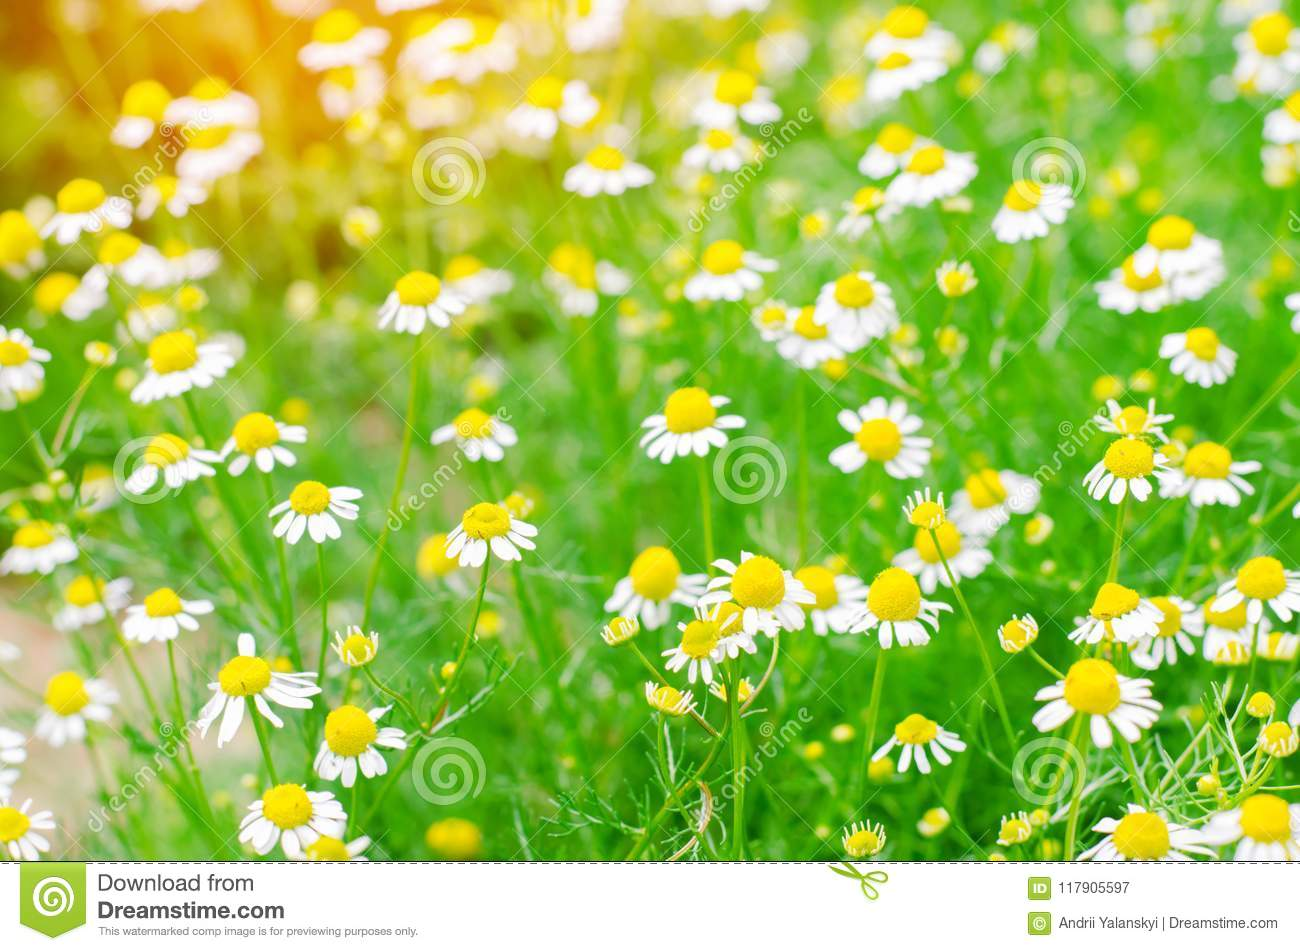 Field Of Chamomile Close Up Beautiful Meadow On A Sunny Day Summer Flowers Natural Wallpaper Nature Background Stock Image Image Of Herb Meadow 117905597